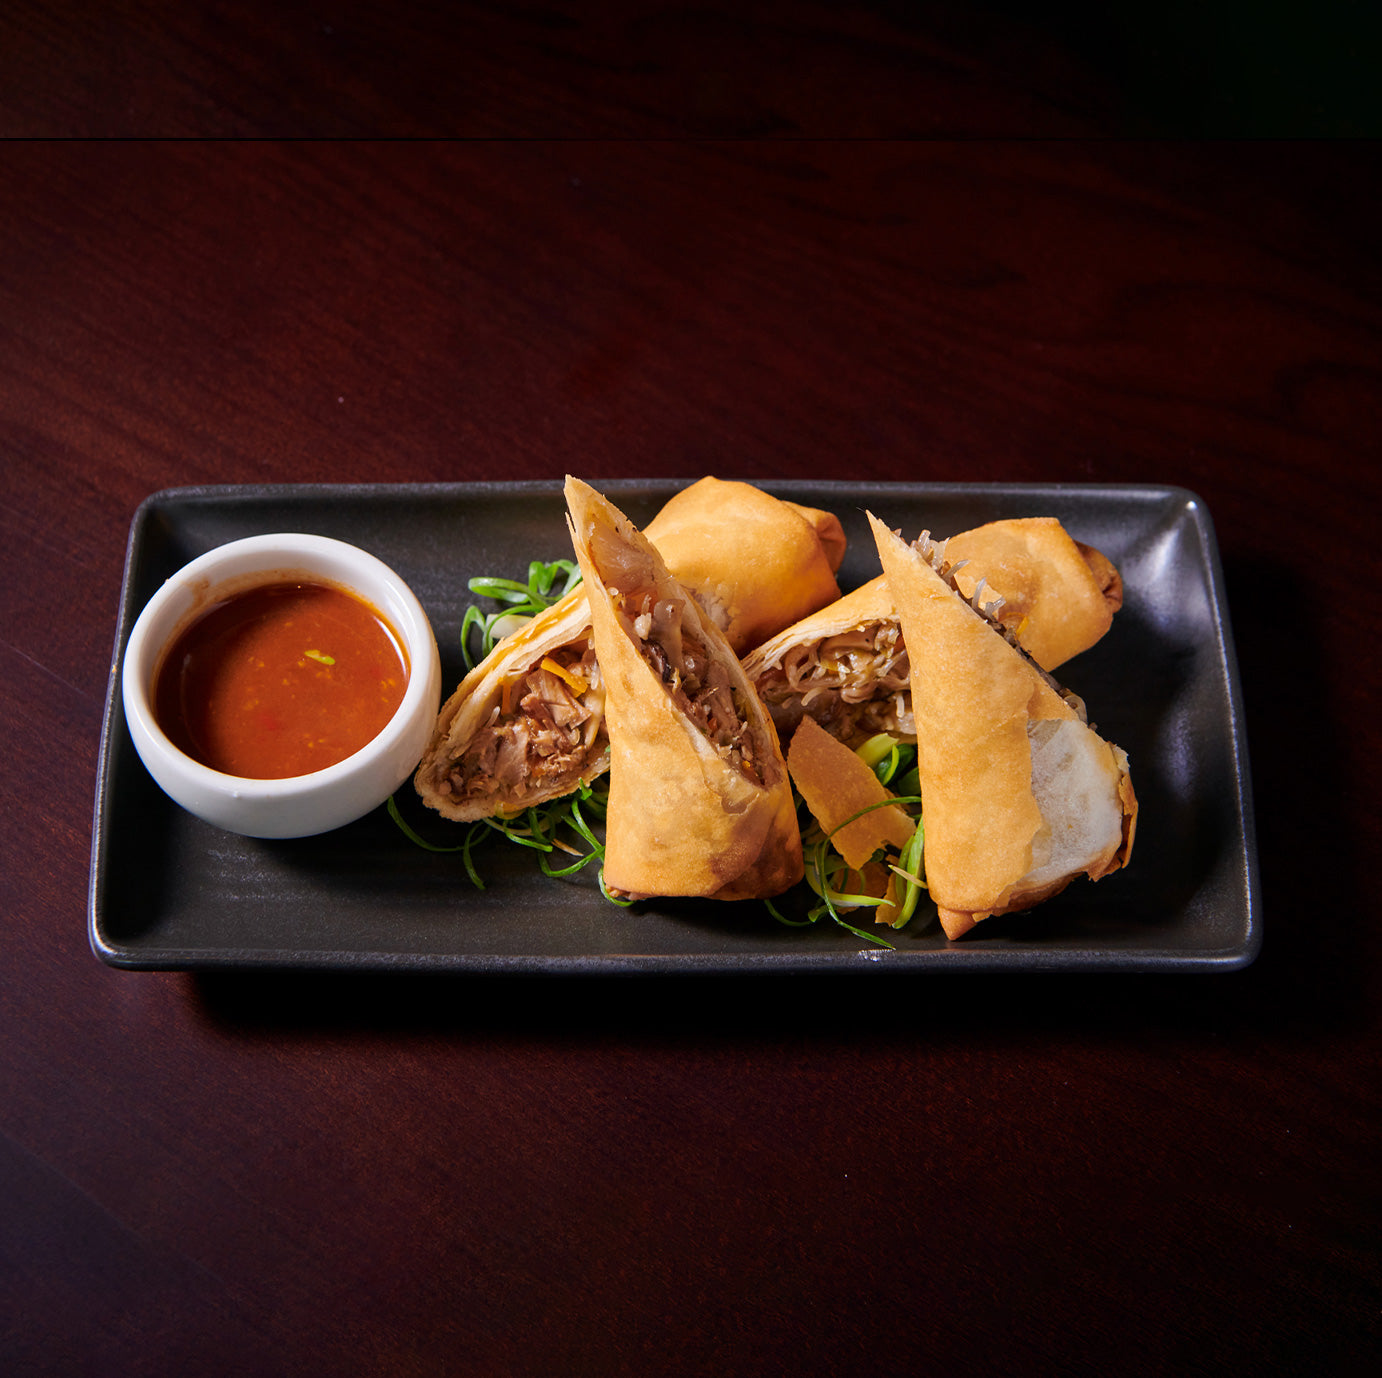 FIVE SPICE PORK SPRING ROLLS